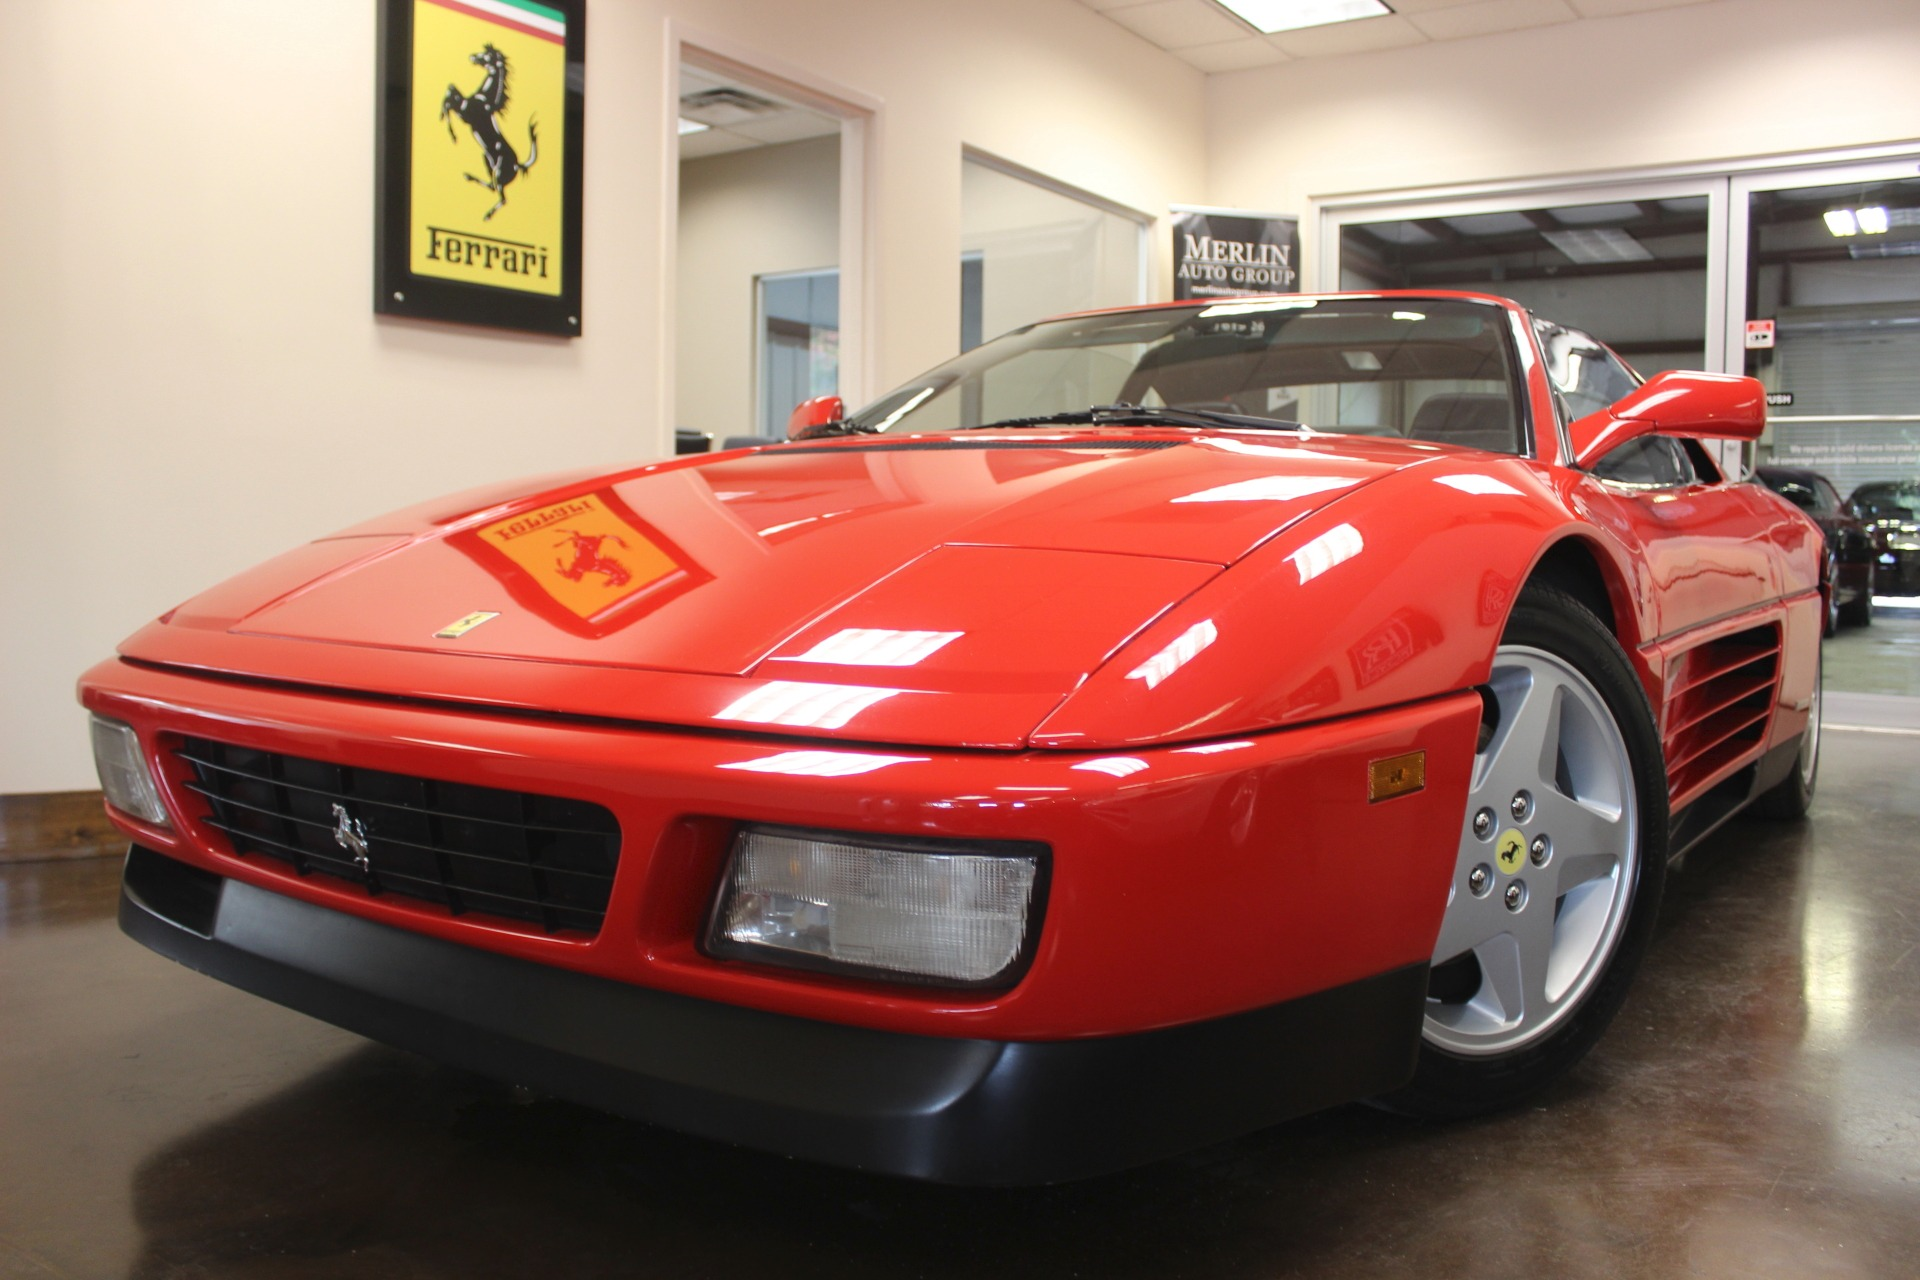 Used 1992 ferrari 348 stock p3258 ultra luxury car from merlin to better serve you merlin auto group works by appointment please call 770 457 2699 to schedule yours today vanachro Images